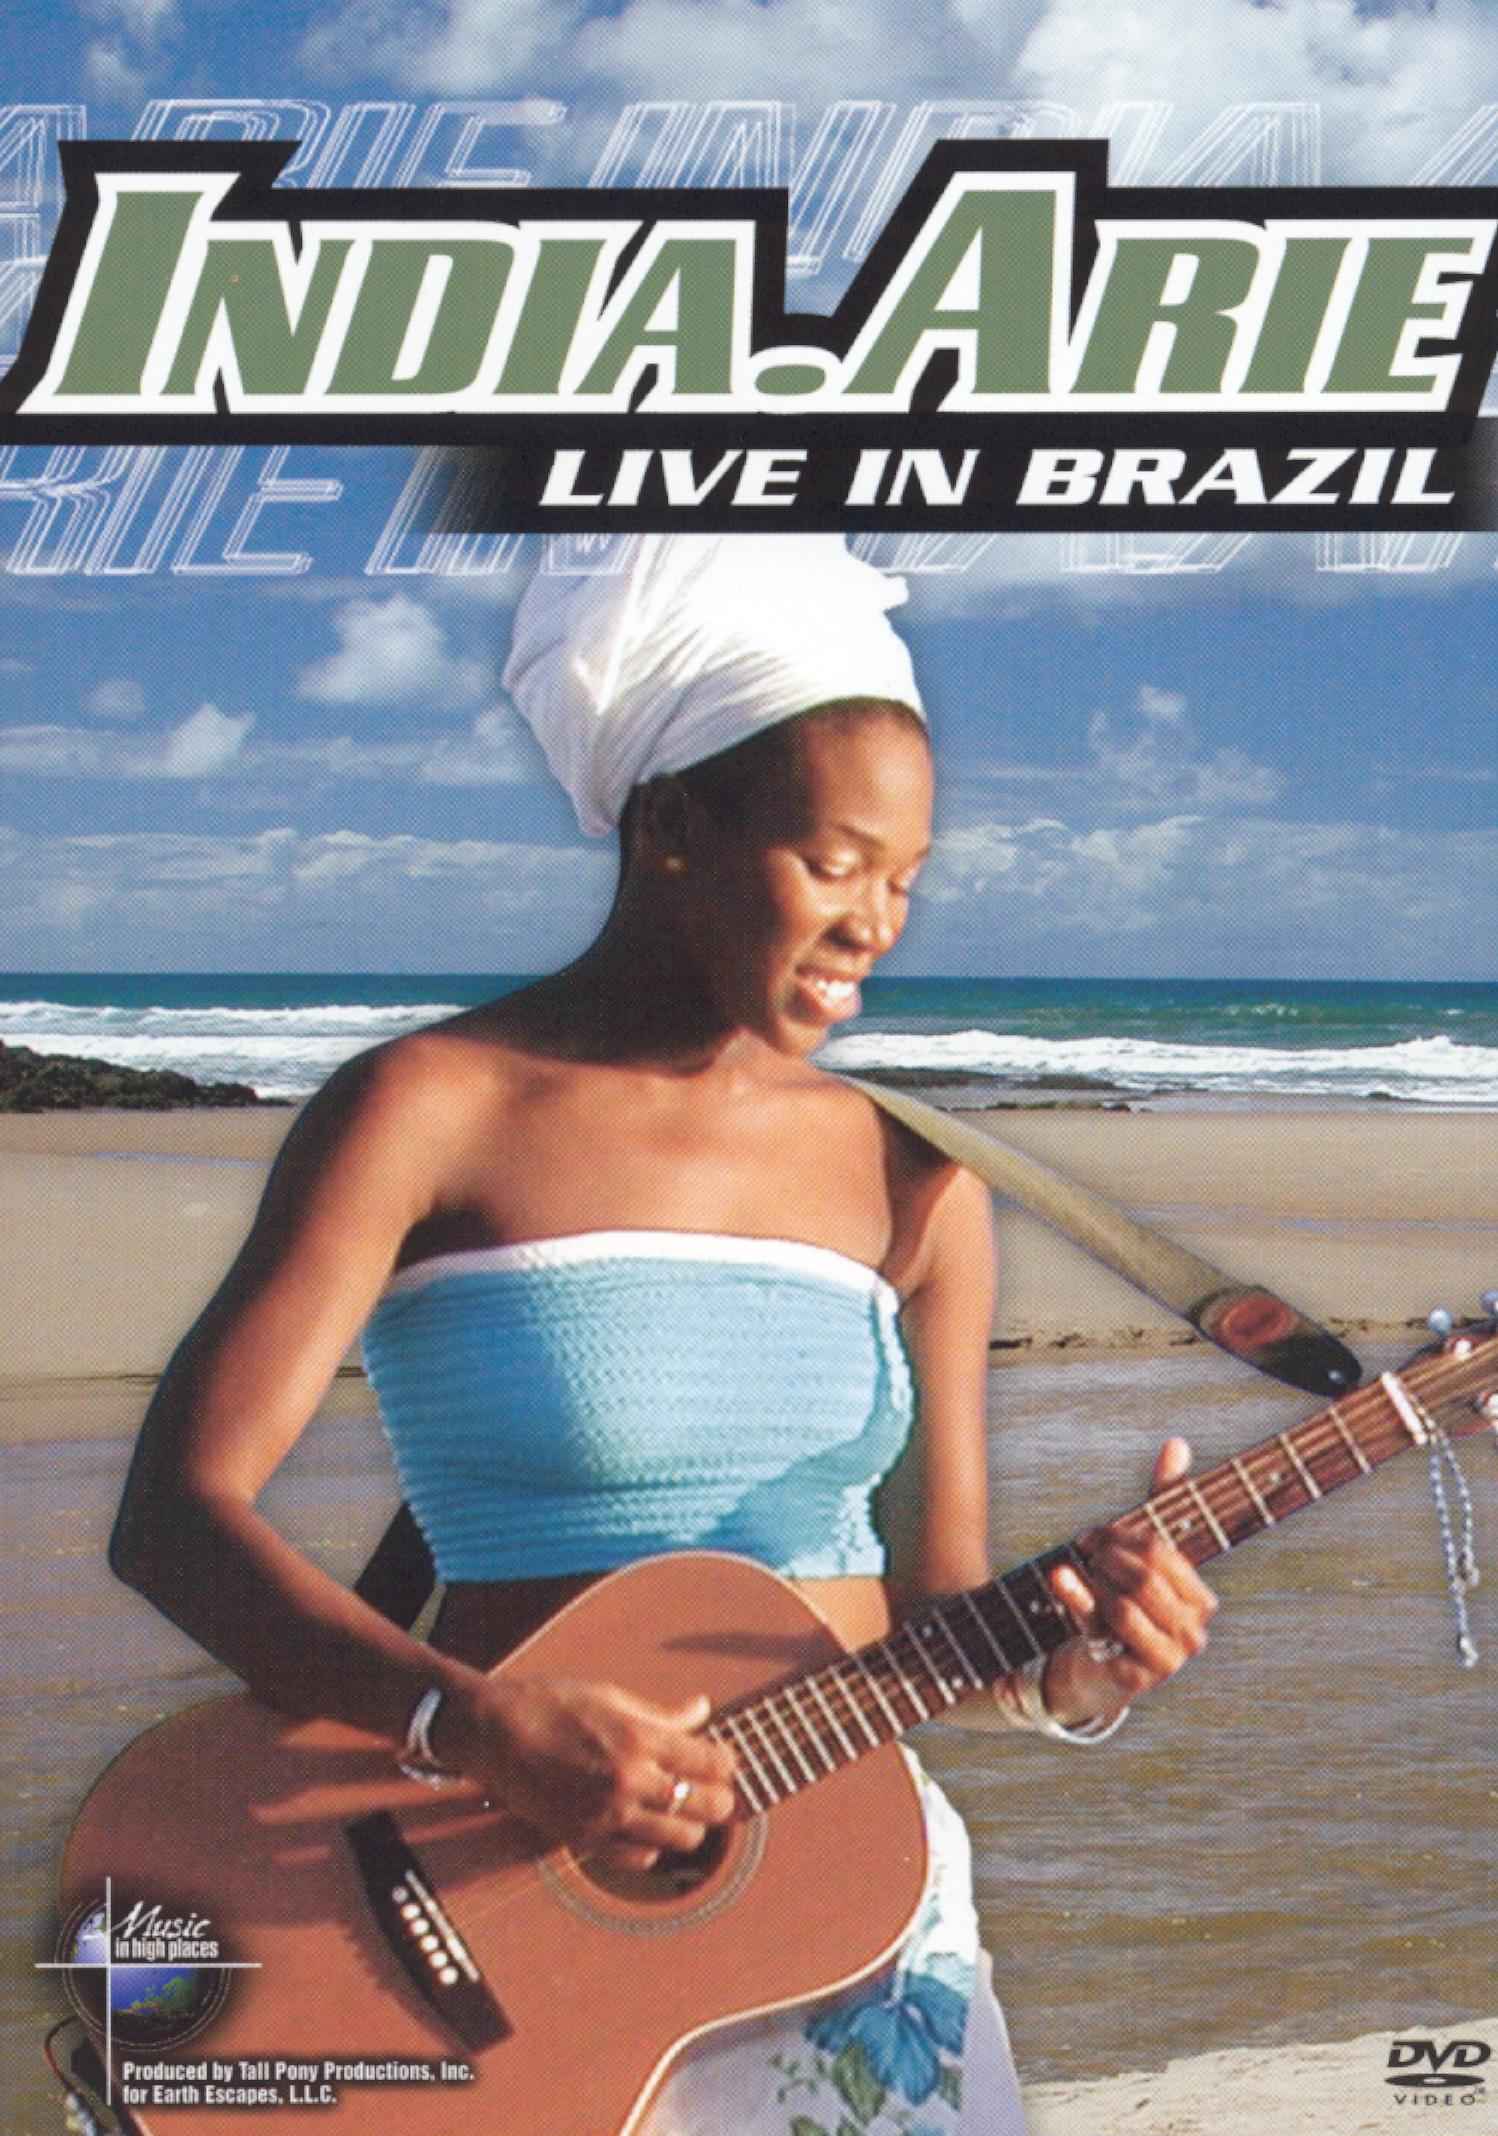 Music in High Places: India Arie - Live in Brazil